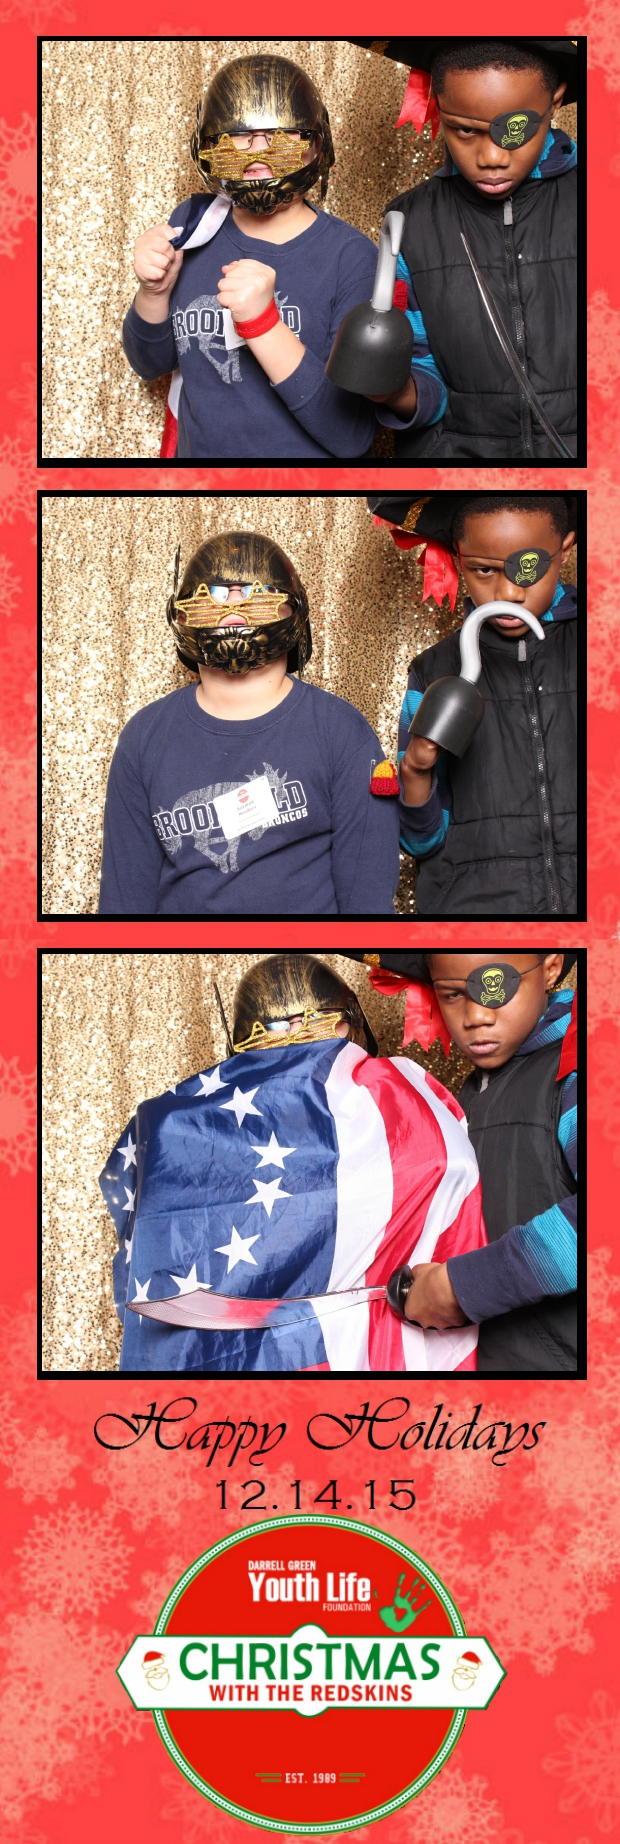 Guest House Events Photo Booth DGYLF Strips (36).jpg